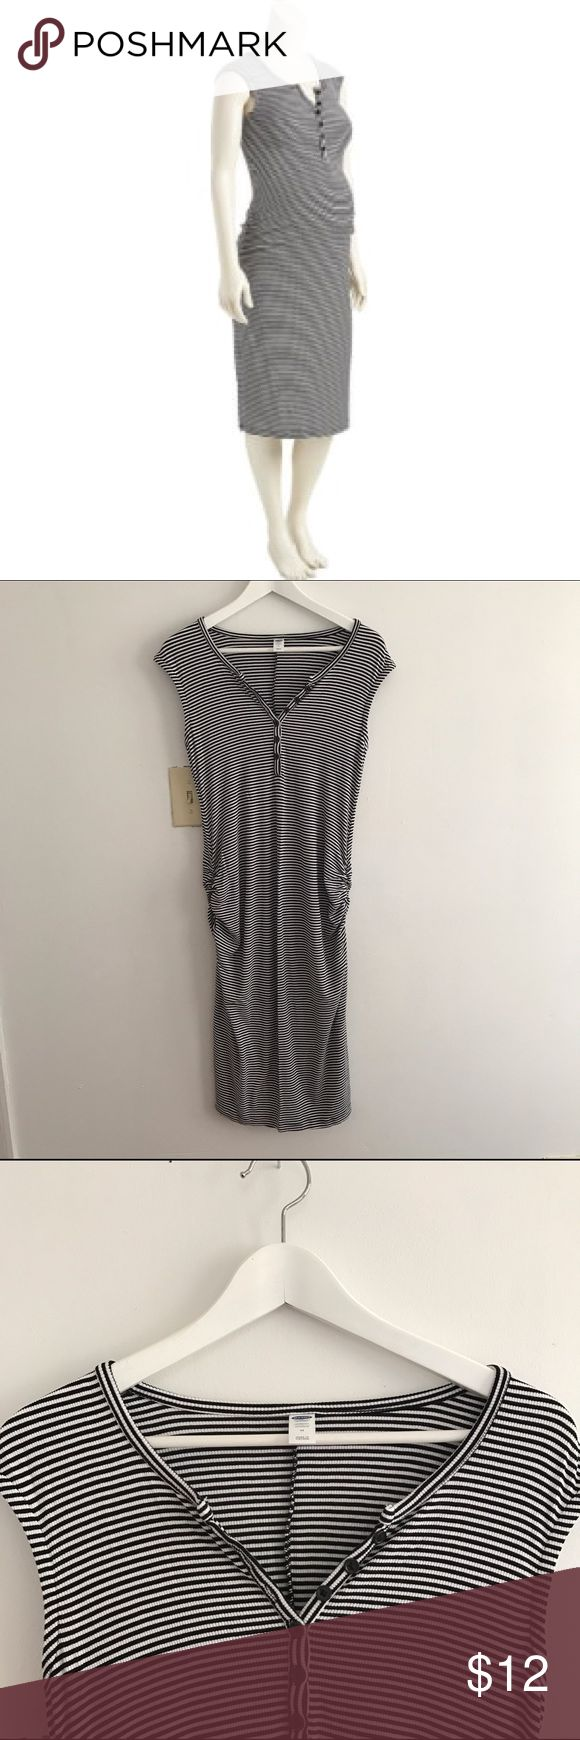 Old Navy Maternity Striped Bodycon Dress EUC Old Navy Maternity Striped Bodycon Dress, size M. Worn a handful of times, super comfy and accommodates a growing belly with side ruching, while still making the boobs and bootie look nice. 👌🏻 Old Navy Maternity Dresses Midi